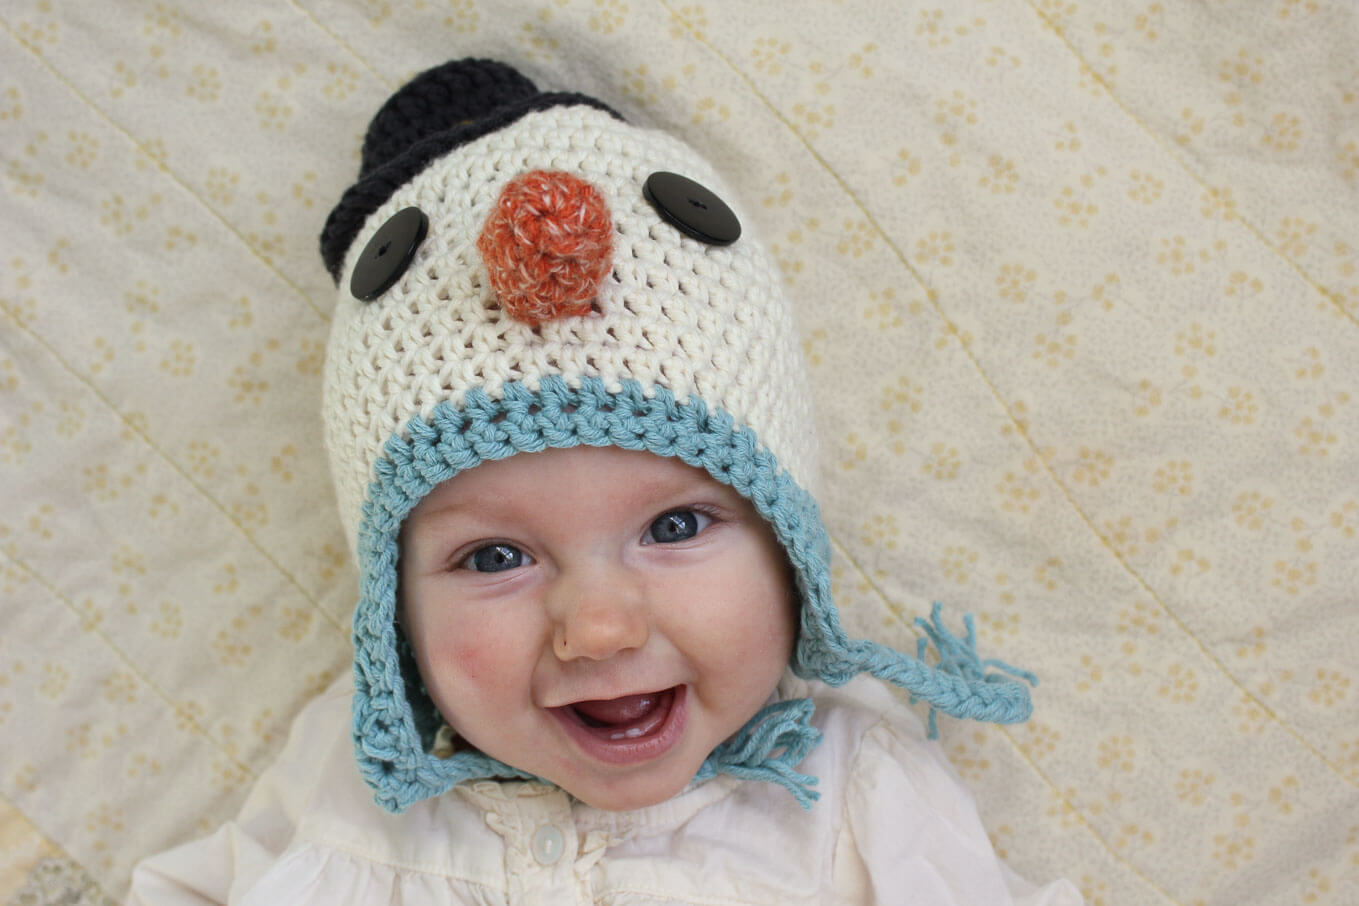 Free crochet hat pattern a baby snowman free beginner snowman crochet hat pattern sizes include newborn infant baby and bankloansurffo Choice Image